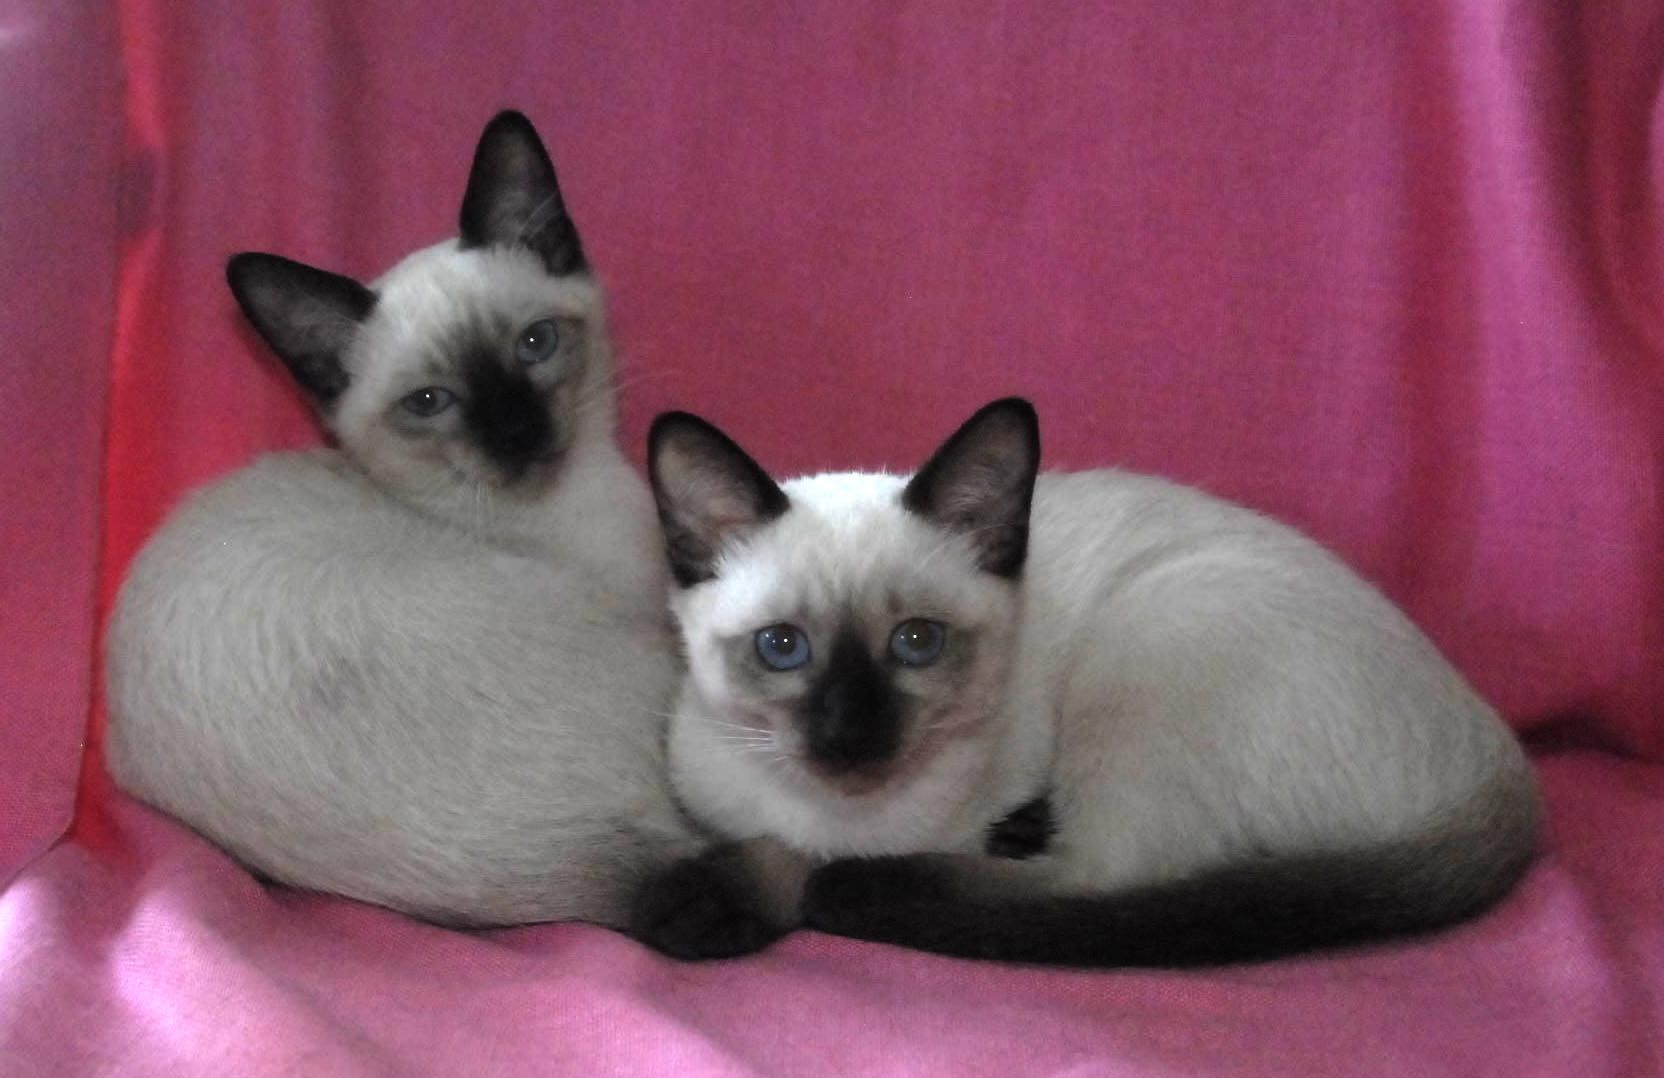 Siamese Kittens Now Dilworthtown Siamese West Chester Pa 484 315 8720 Siamese Cats Siamese Kittens Cats